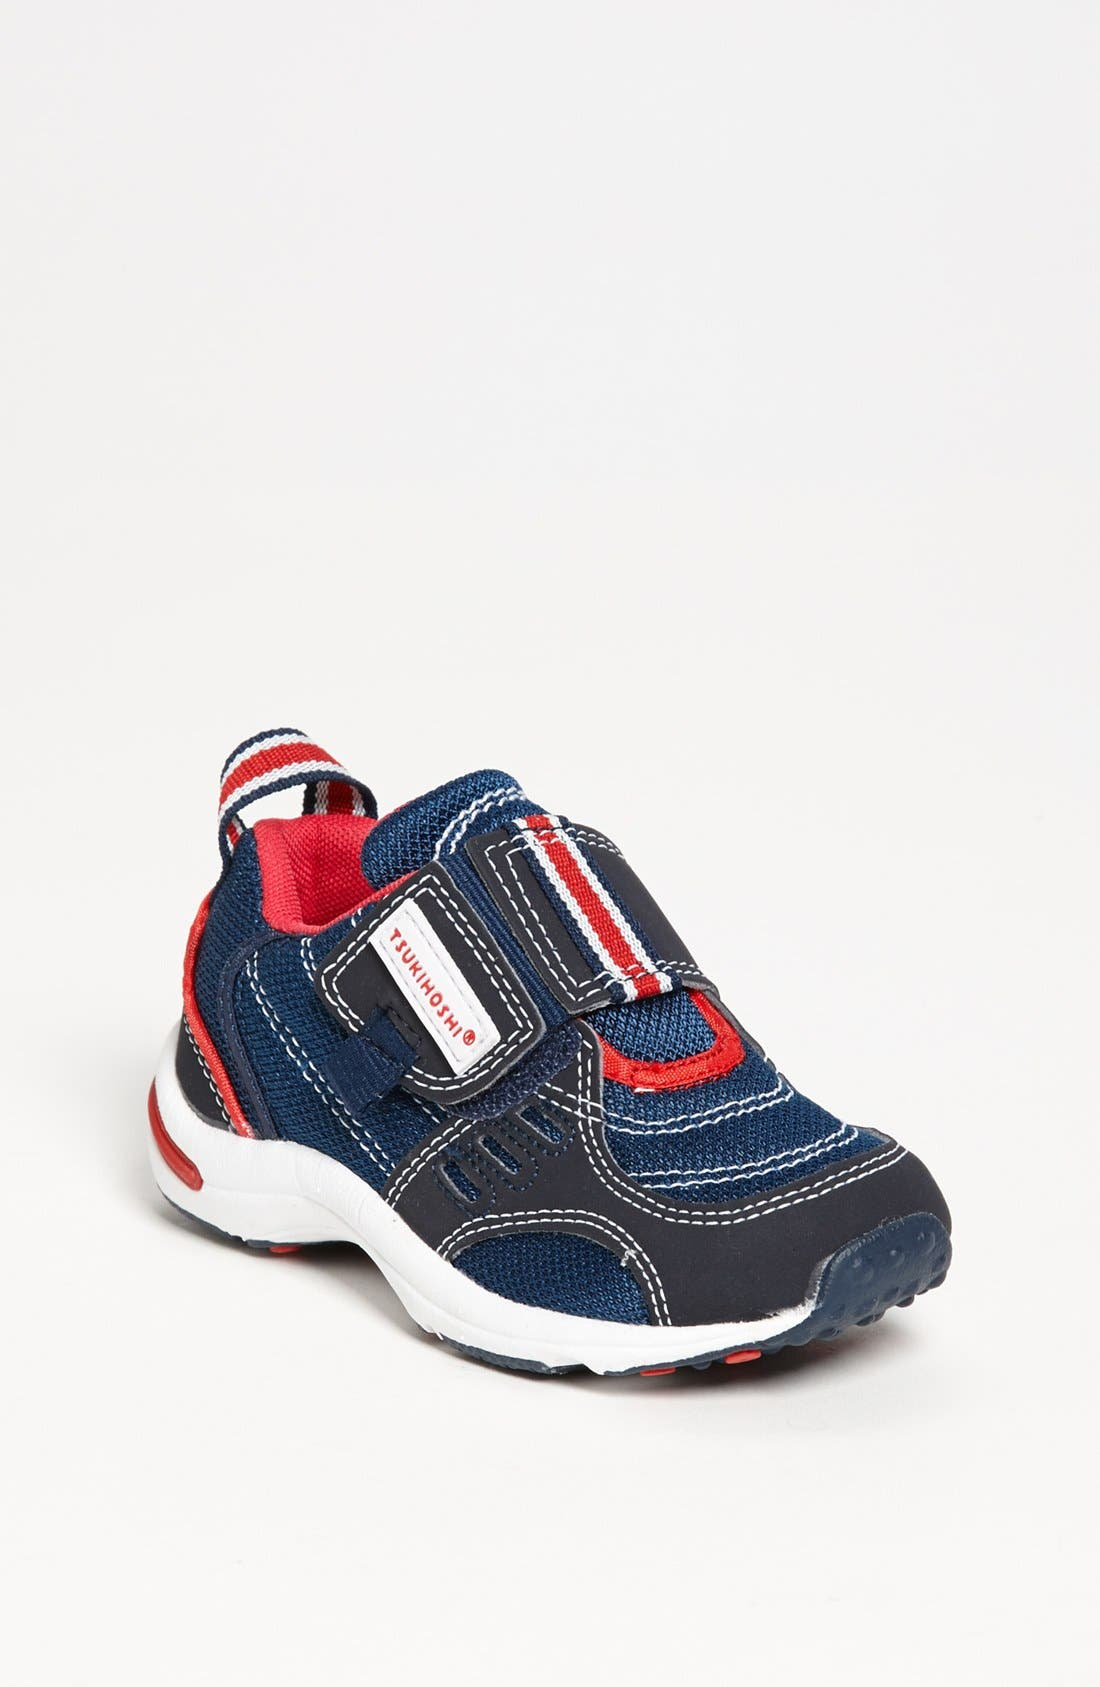 Alternate Image 1 Selected - Tsukihoshi 'Child 1' Sneaker (Toddler & Little Kid)